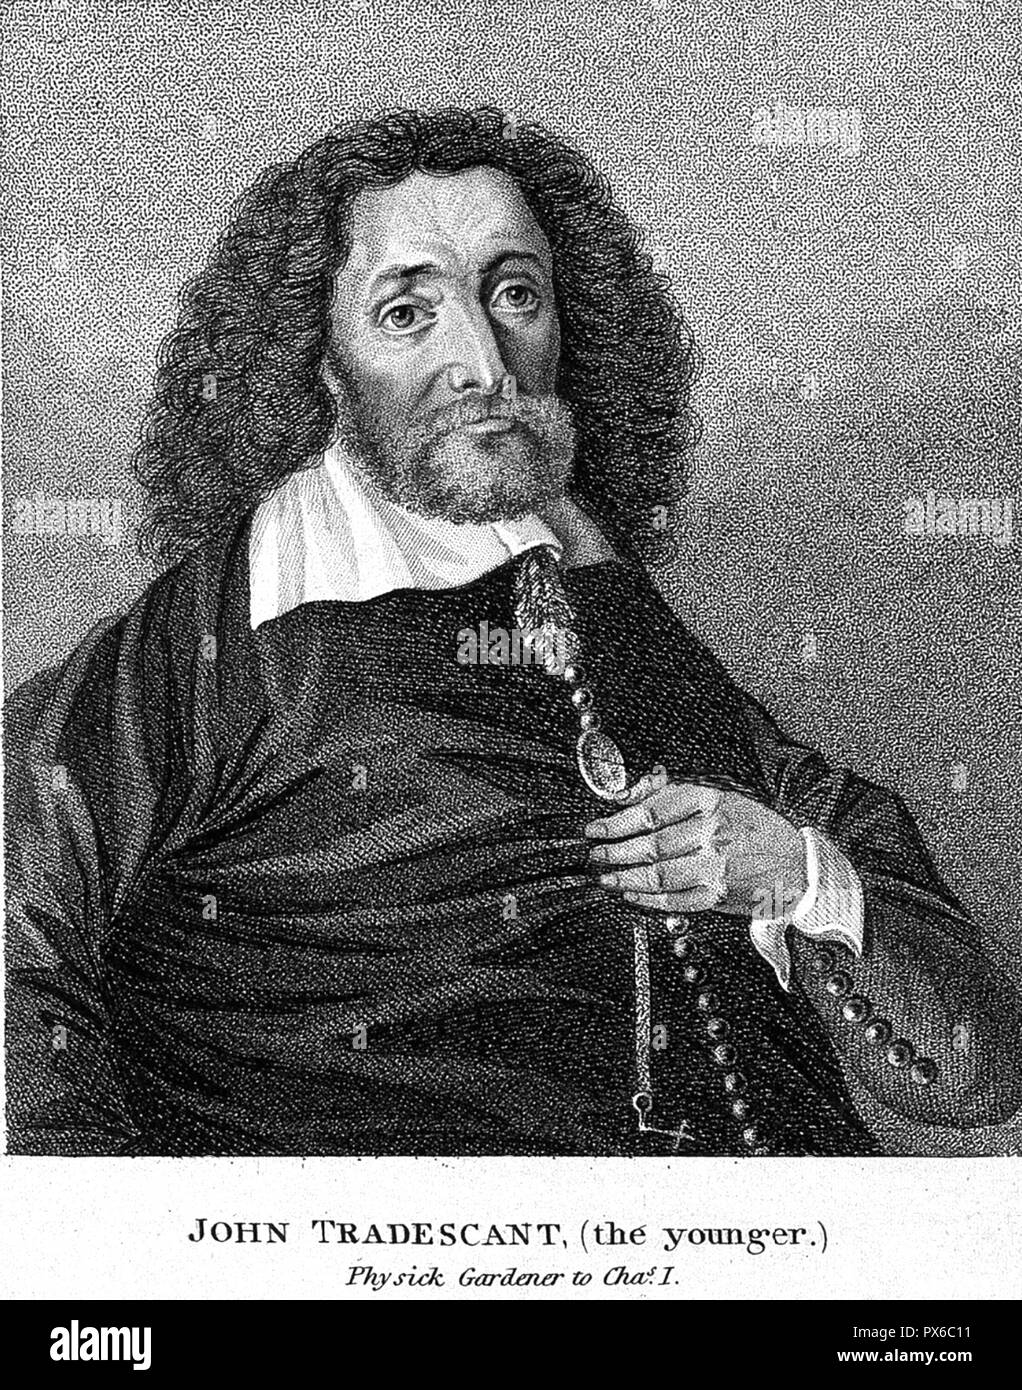 JOHN TRADESCANT THE YOUNGER (1608-1662) English botanist and gardener - Stock Image